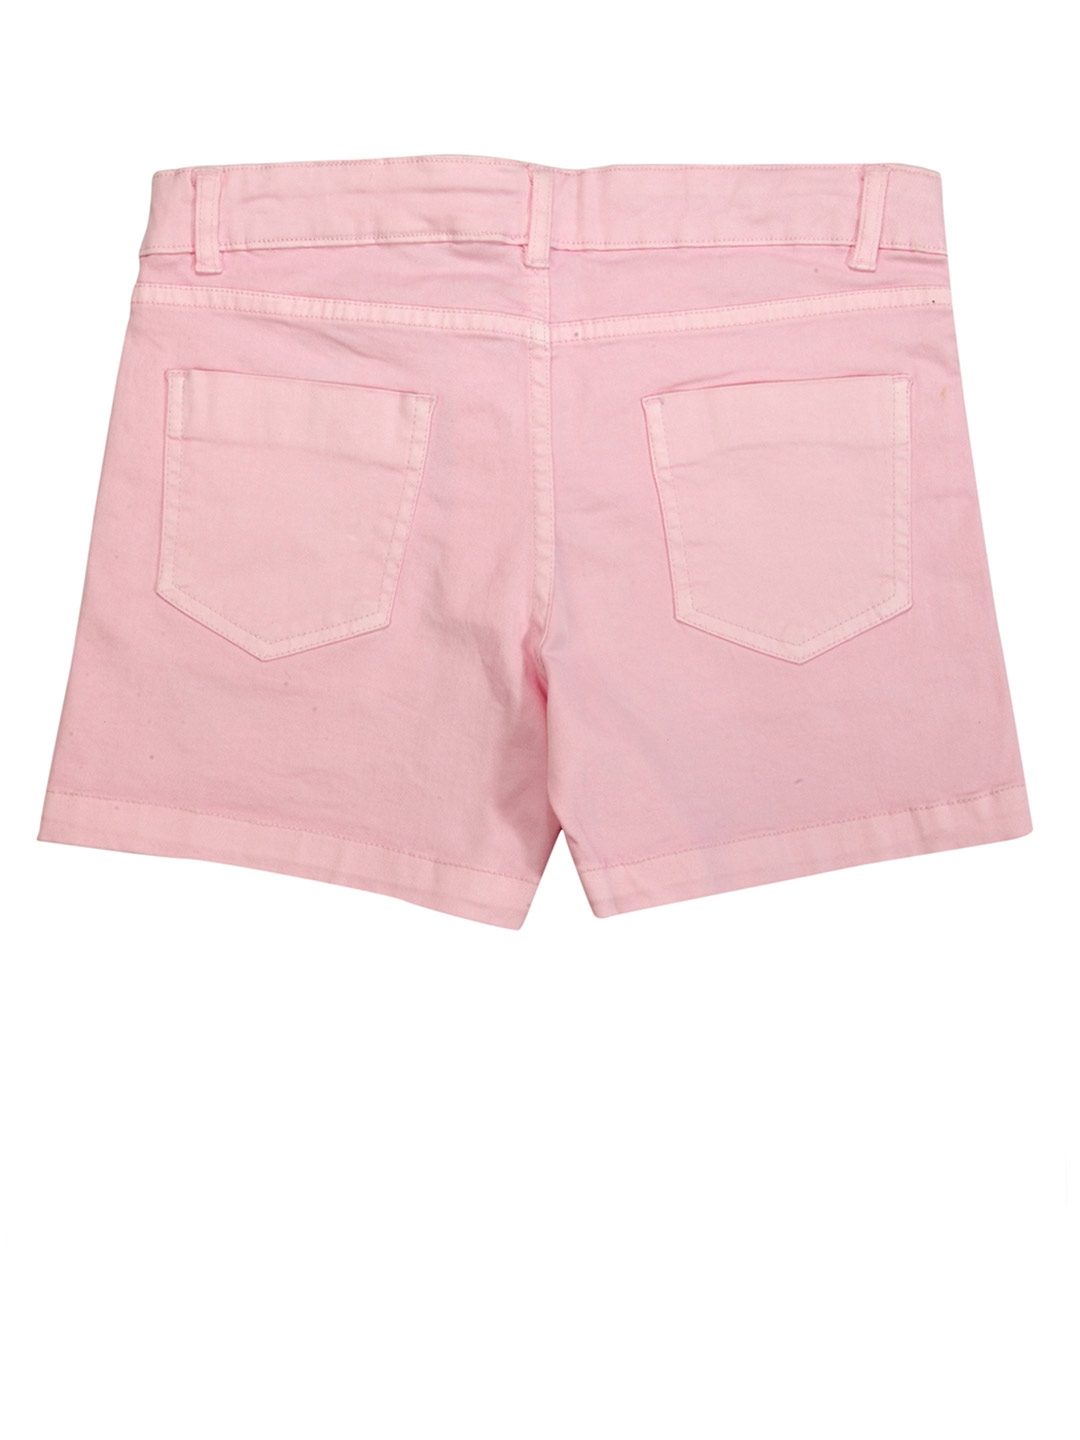 0530127a4c Buy Pepe Jeans Girls Pink Embroidered Denim Shorts - Shorts for ...